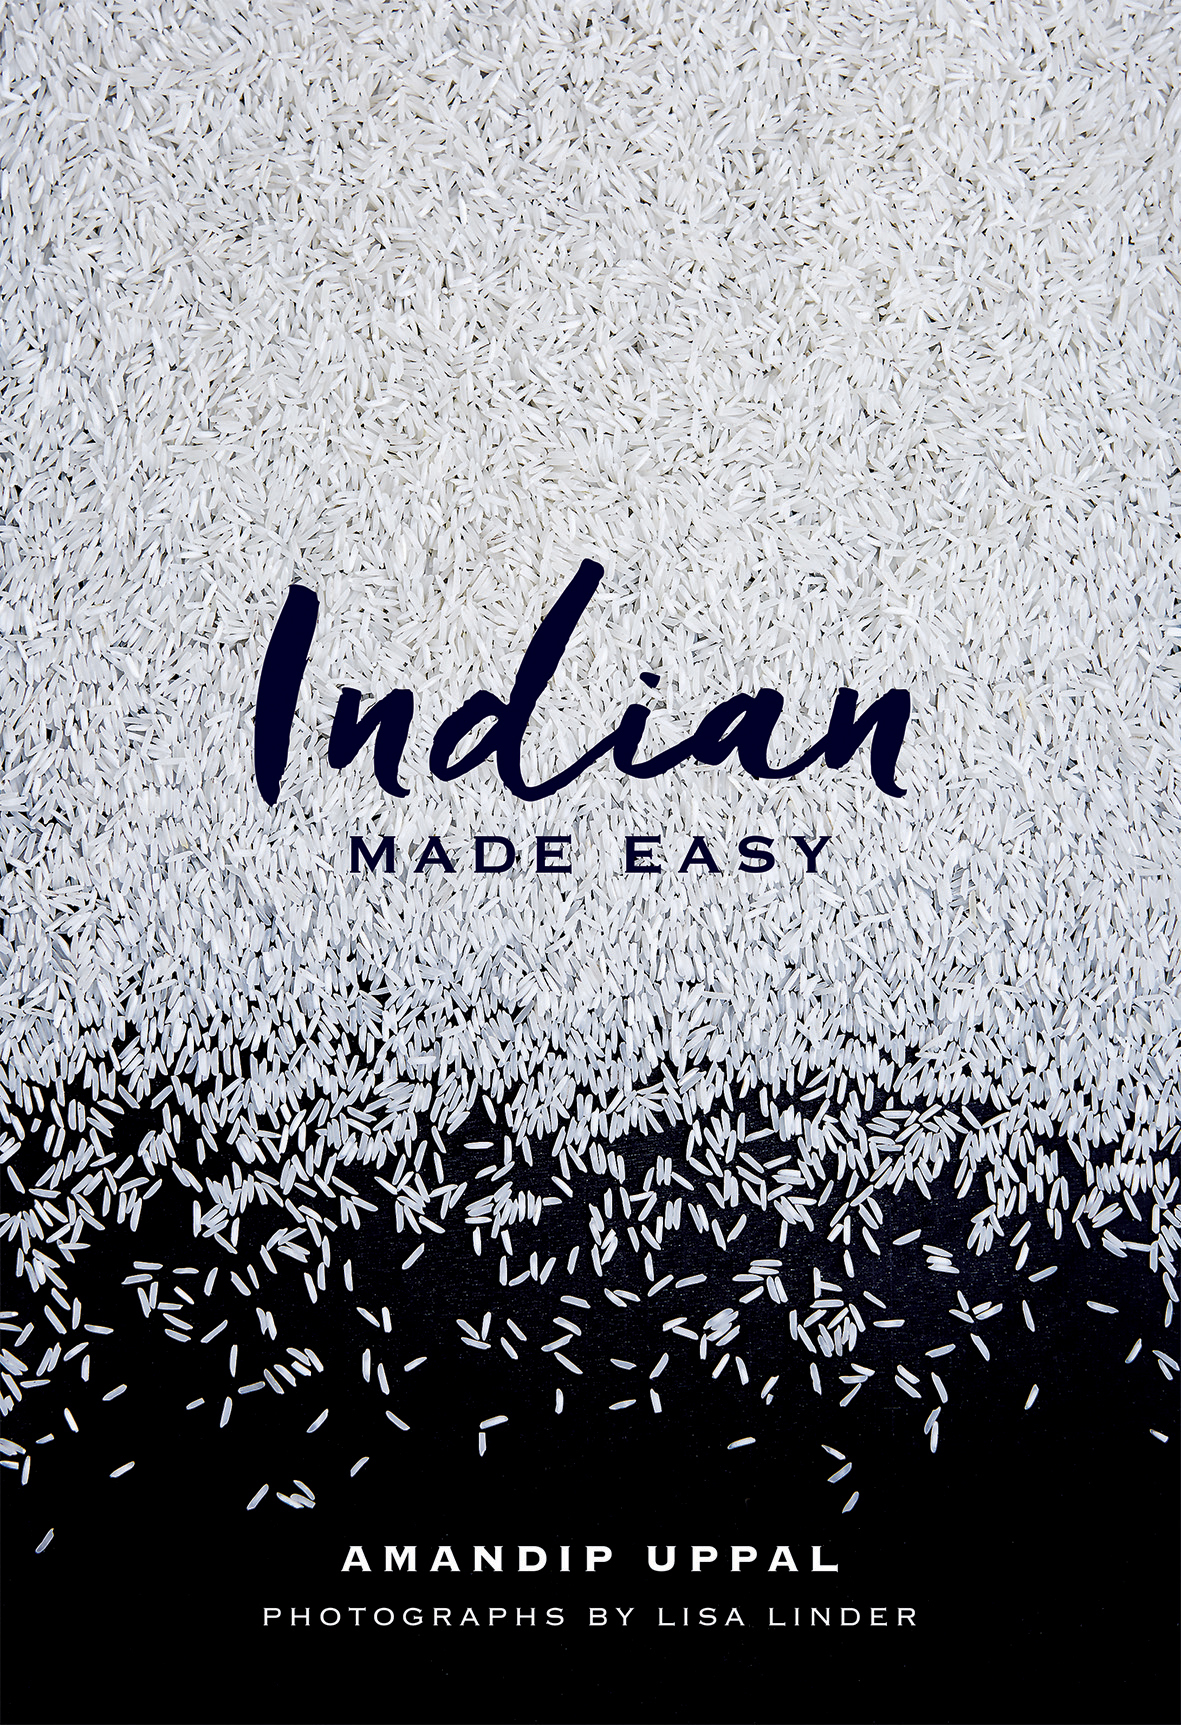 Indian Made Easy Amandip Uppal 9781743368565 Murdoch Books